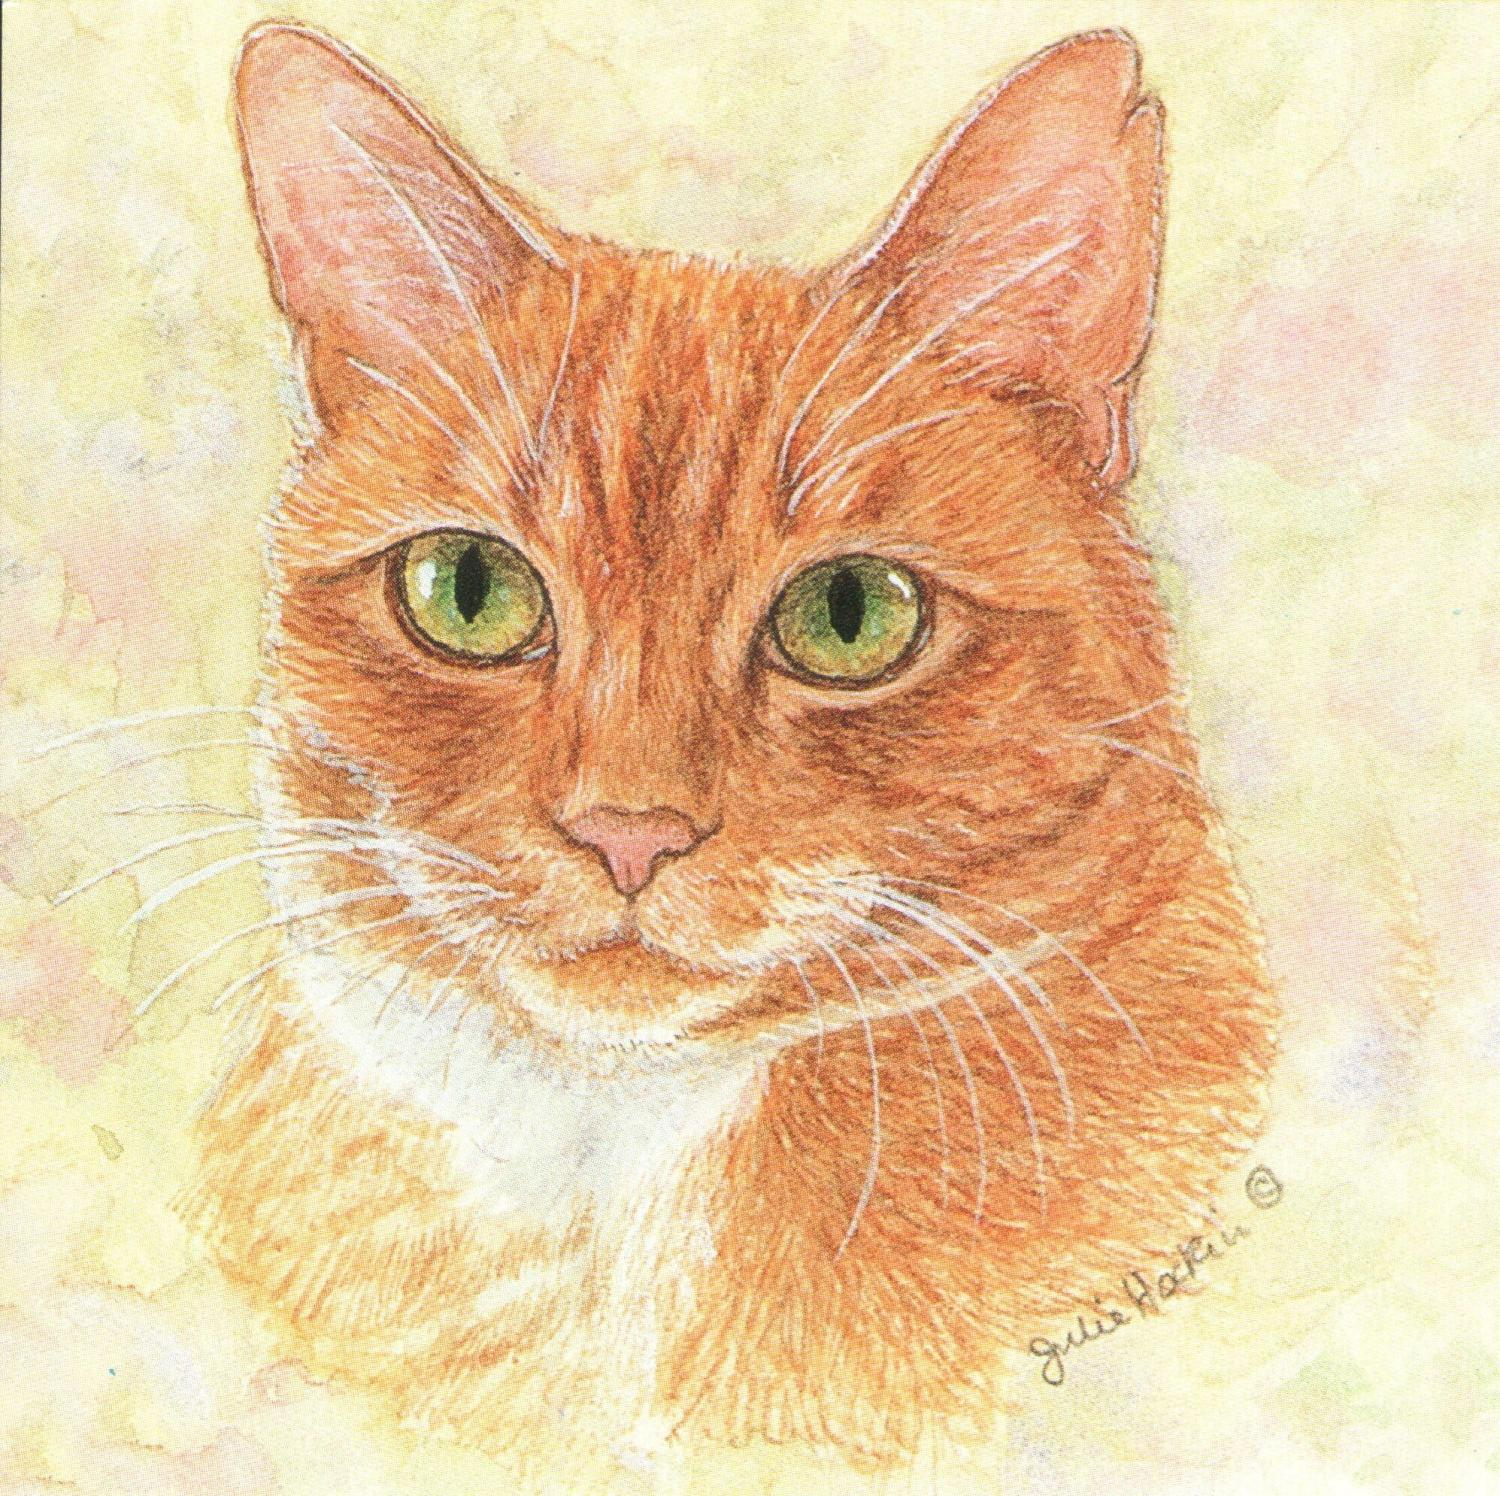 Small Magnetic Fridge Pad - Ginger Cat